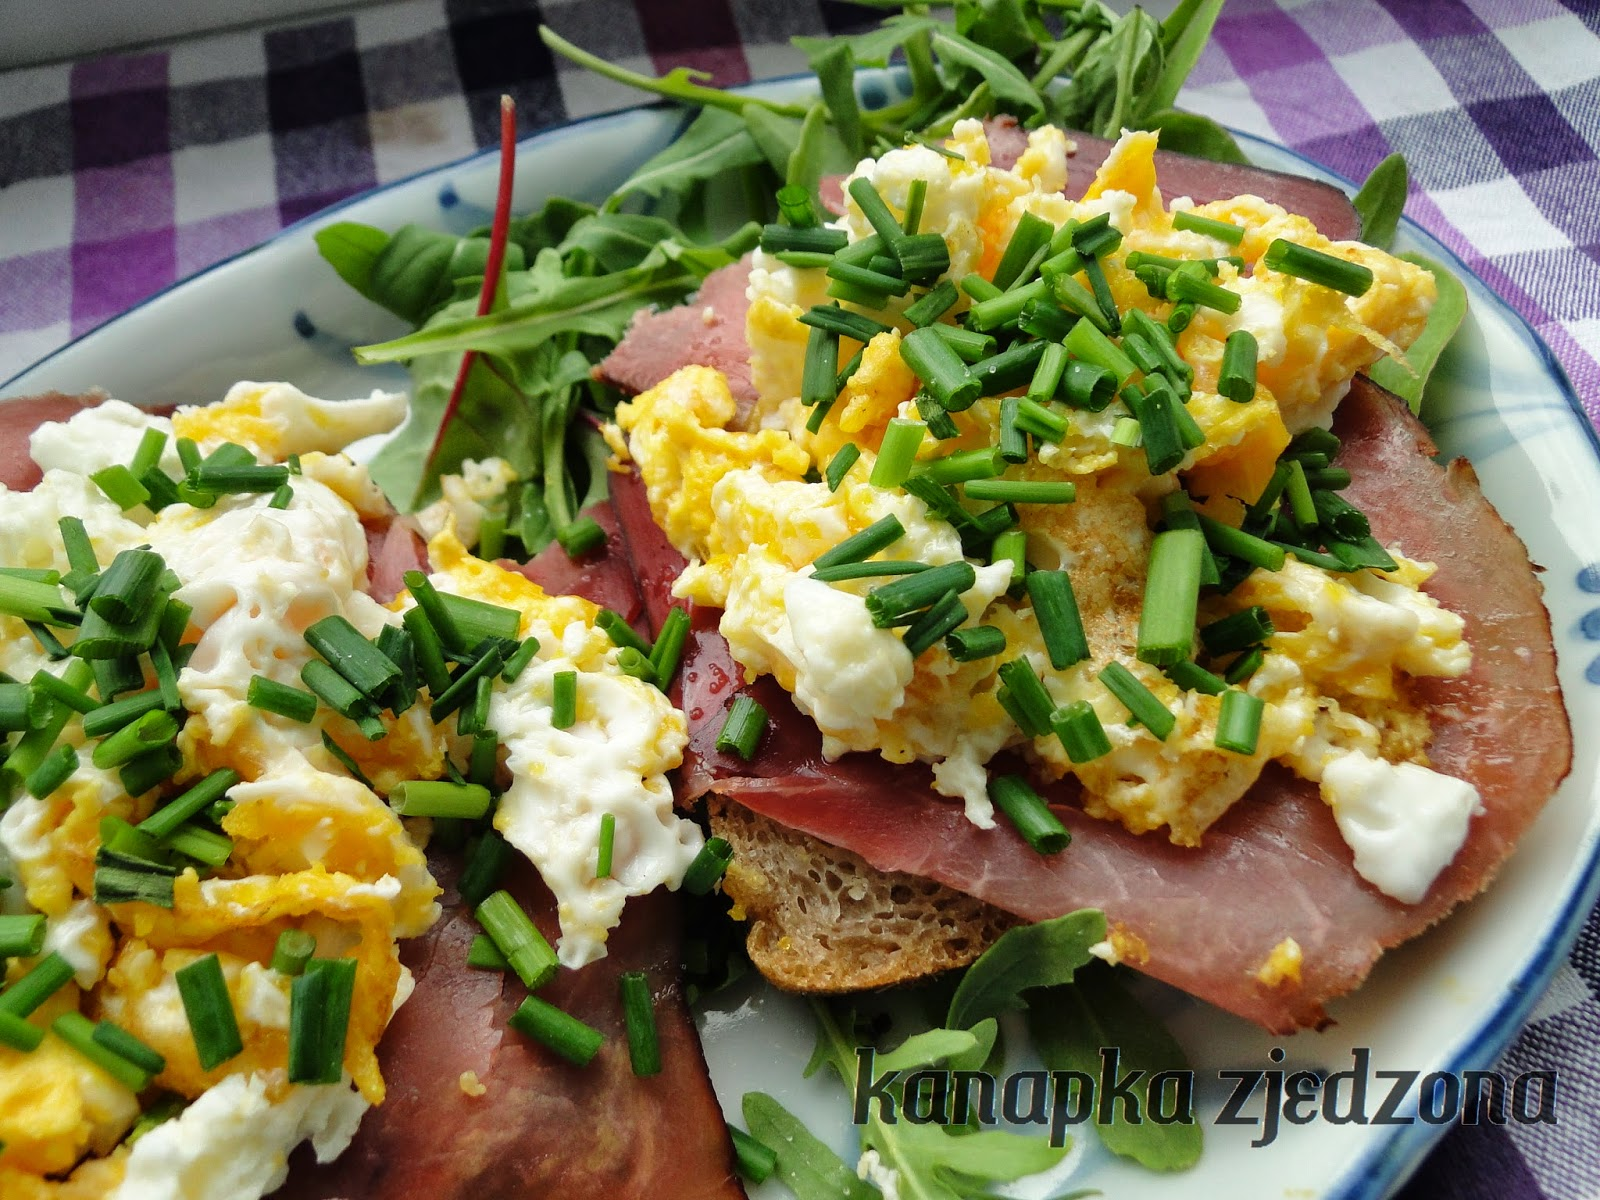 szynaka schwarzwaldzka, sandwich with scrambled eggs and ham, sándwich con huevos revueltos y jamón,  sandwich avec des oeufs brouillés et jambon, Sandwich mit Rührei und Schinken